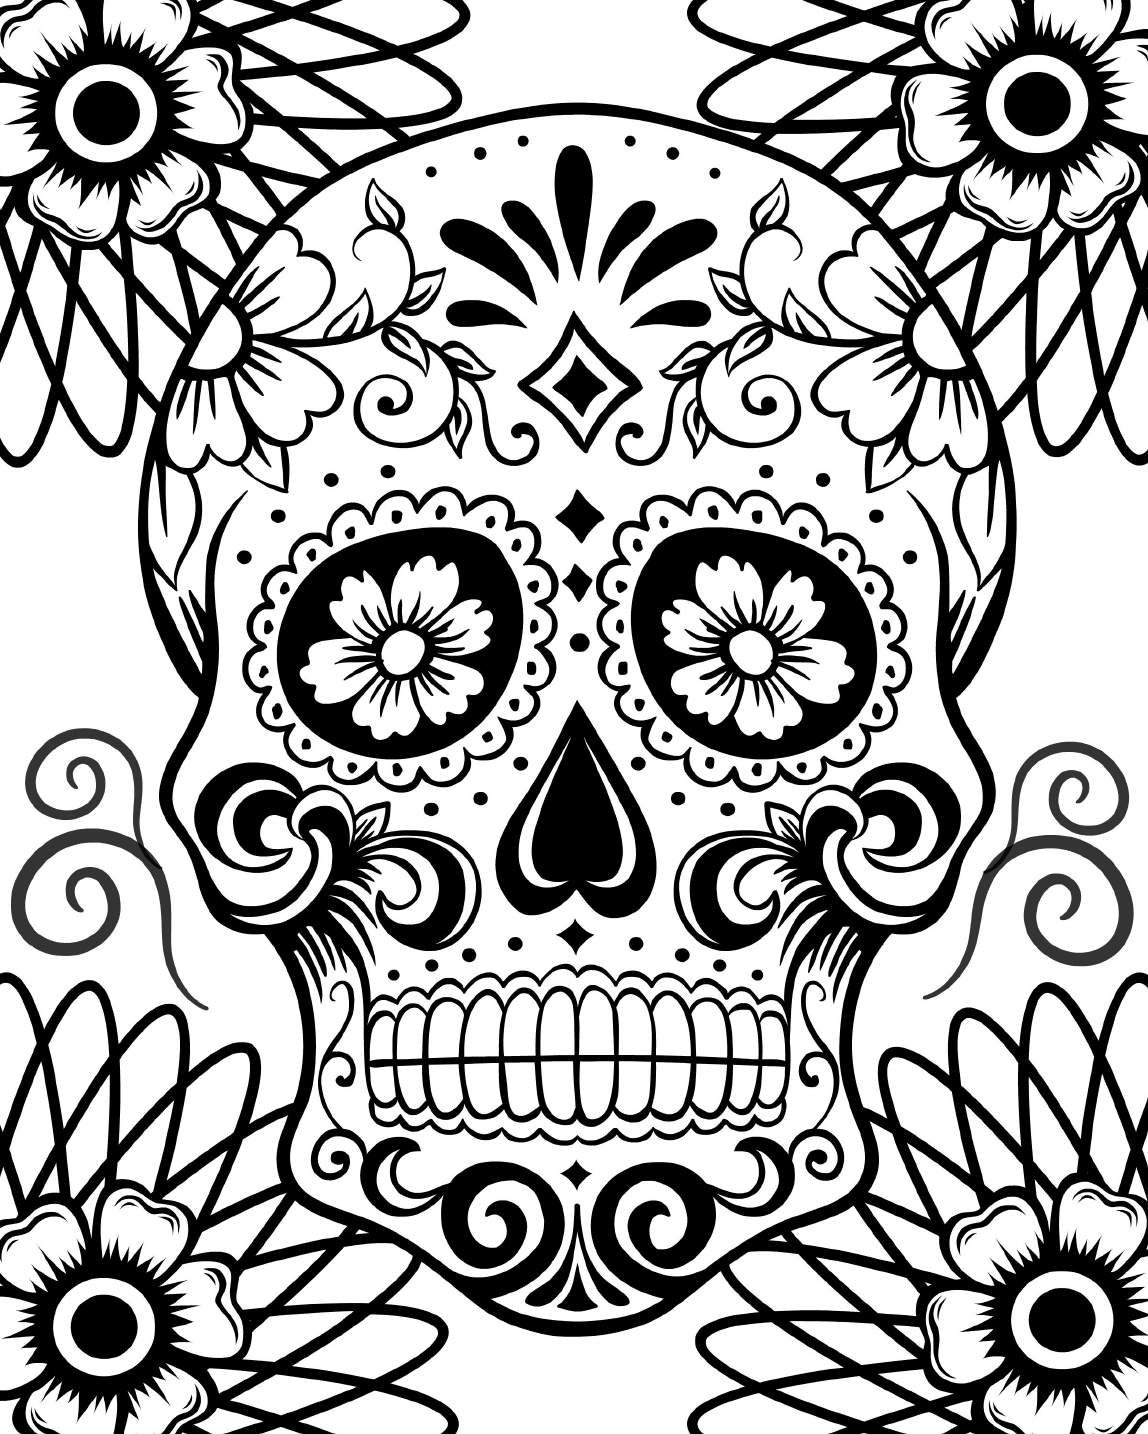 Free Printable Day of the Dead Coloring Pages - Best Coloring Pages ...